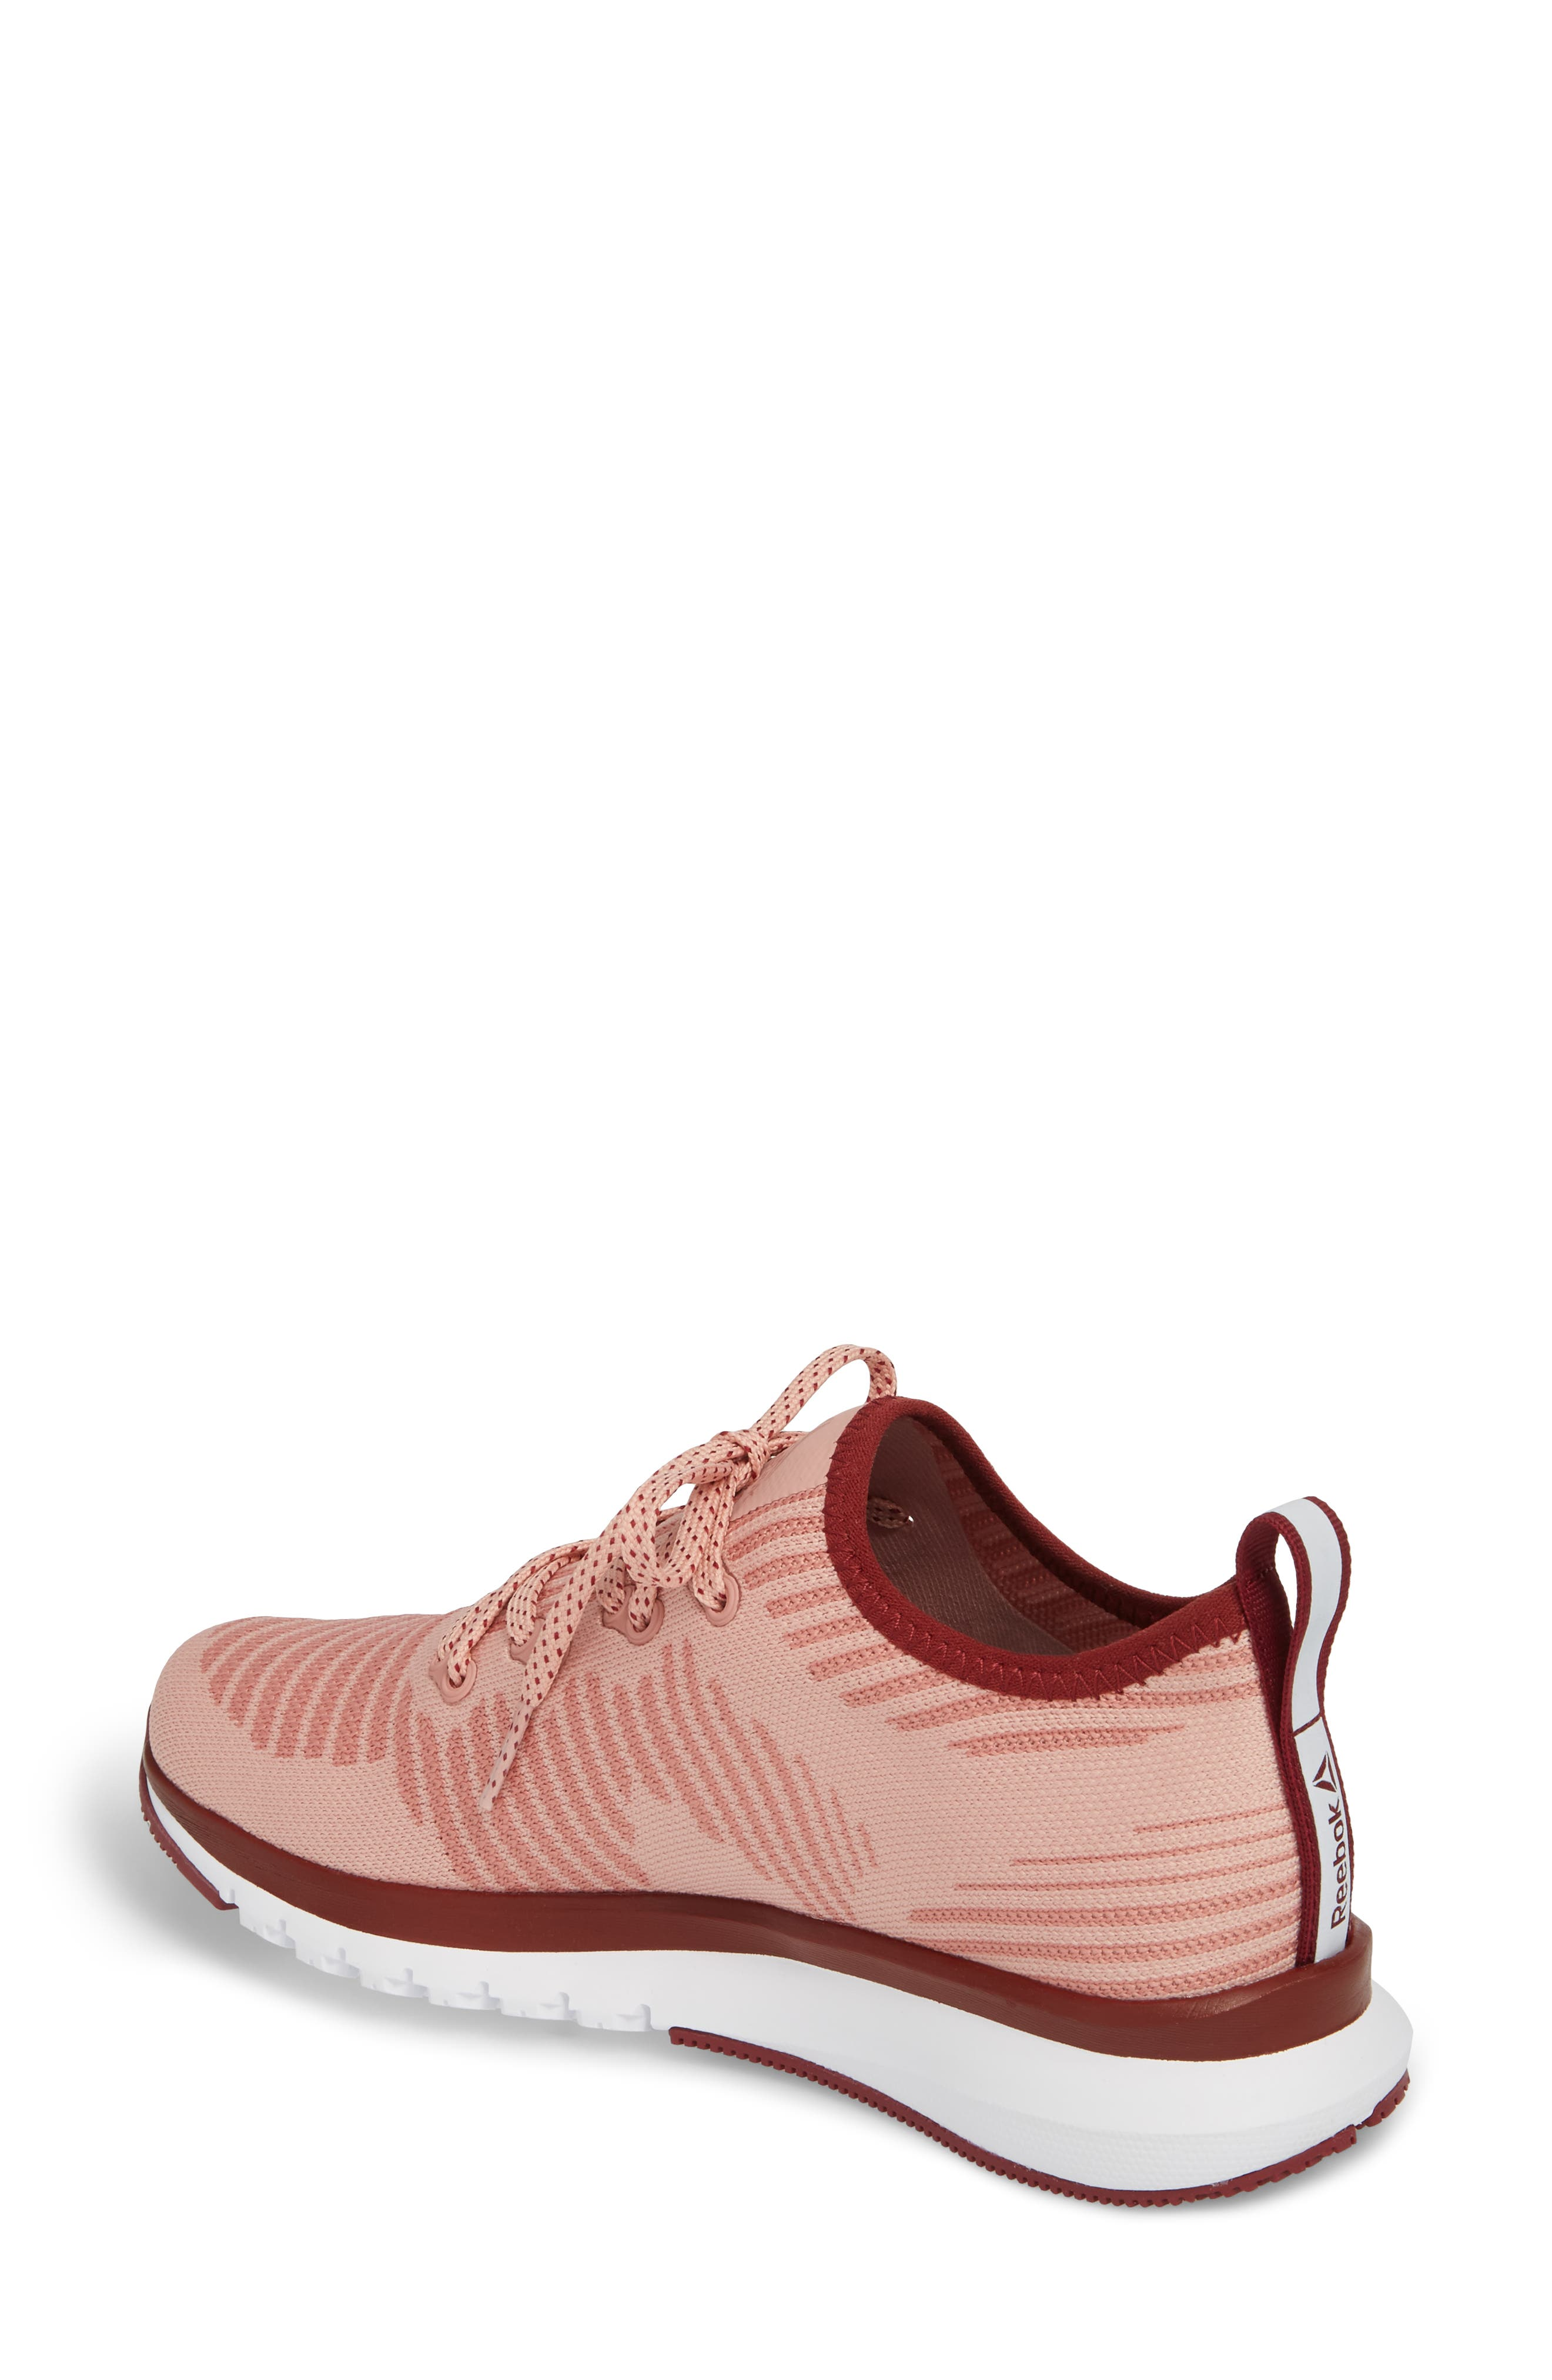 Print Run Smooth Ultra Knit Running Shoe,                             Alternate thumbnail 2, color,                             Chalk Pink/ Urban Maroon